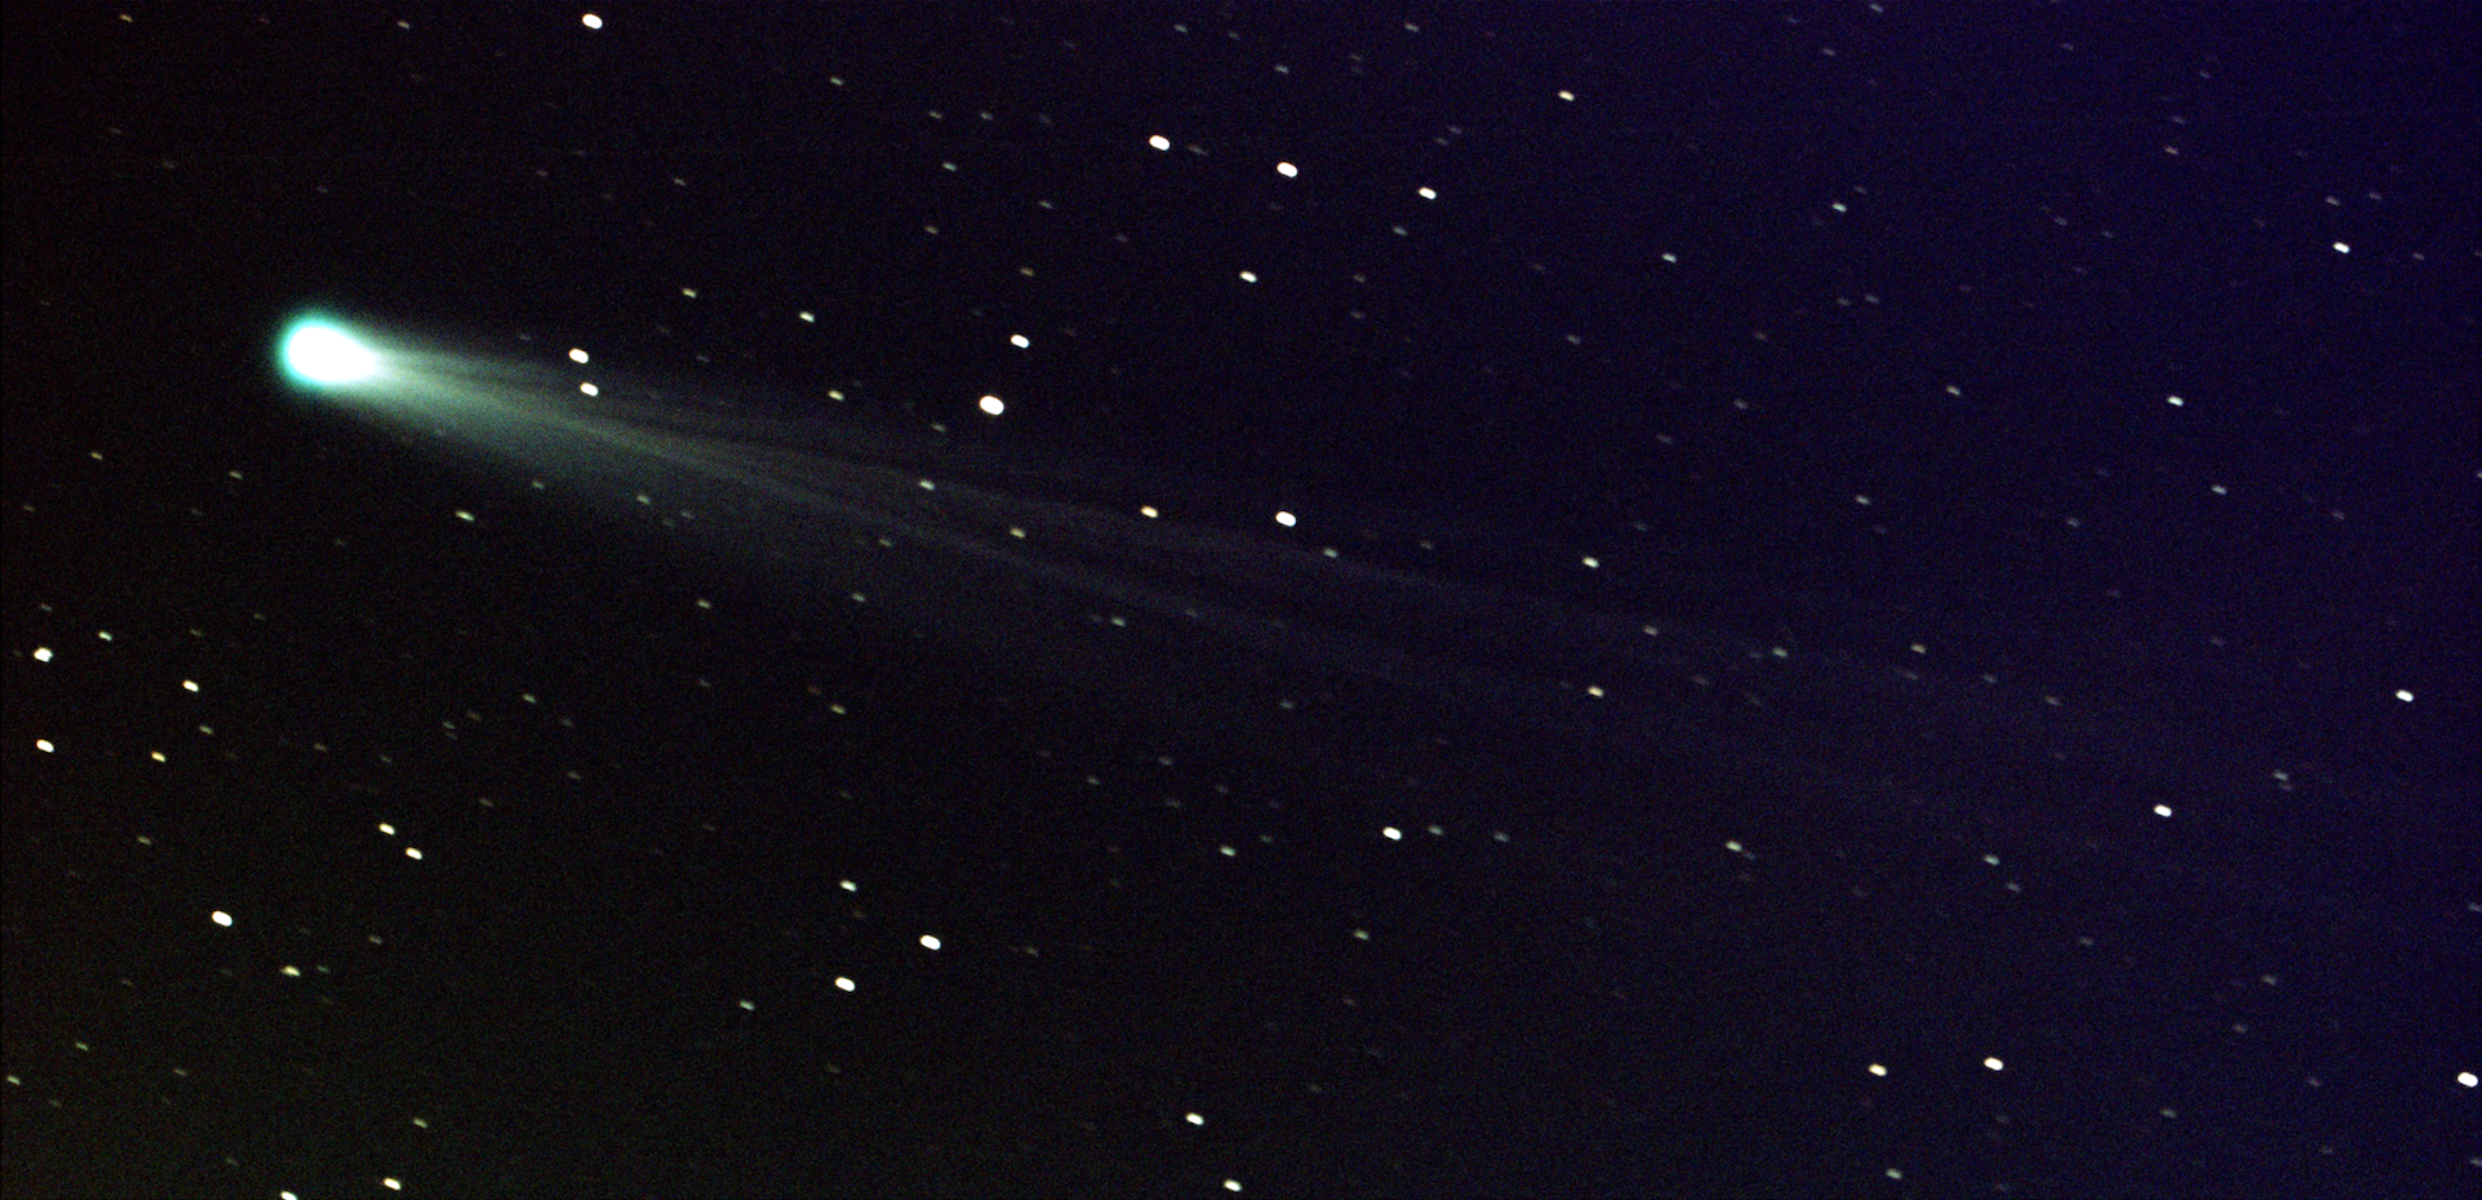 NASA Sees Comet ISON 9 Days Before Close Sun Encounter